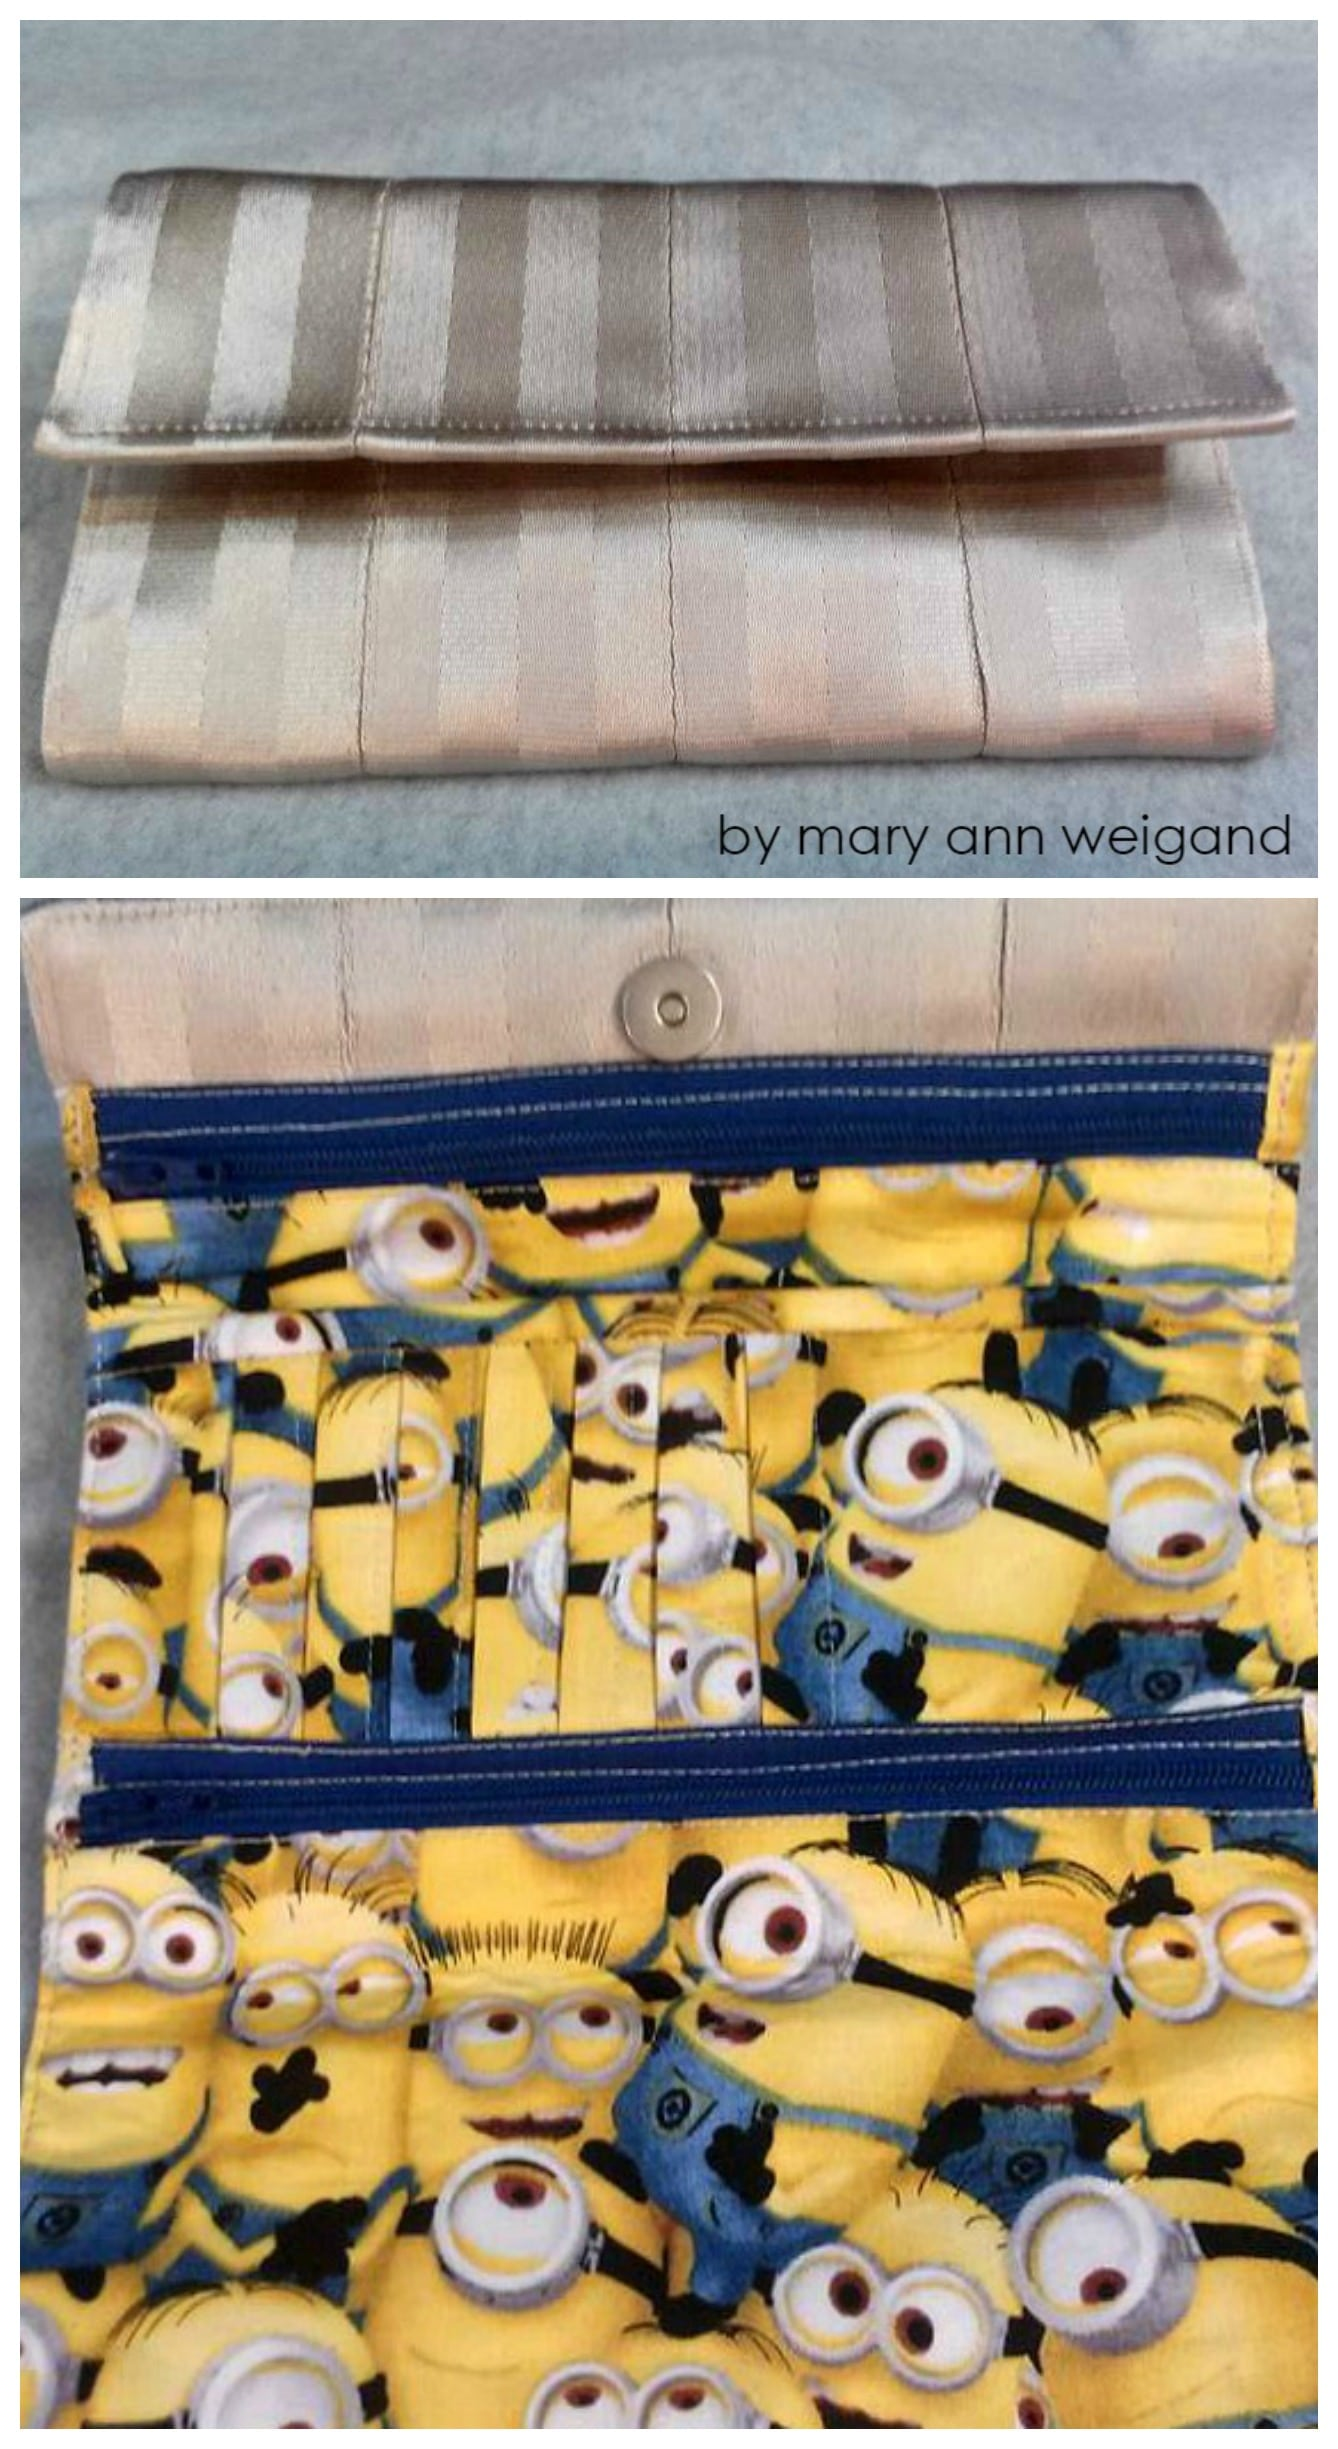 mary ann's minion wallet